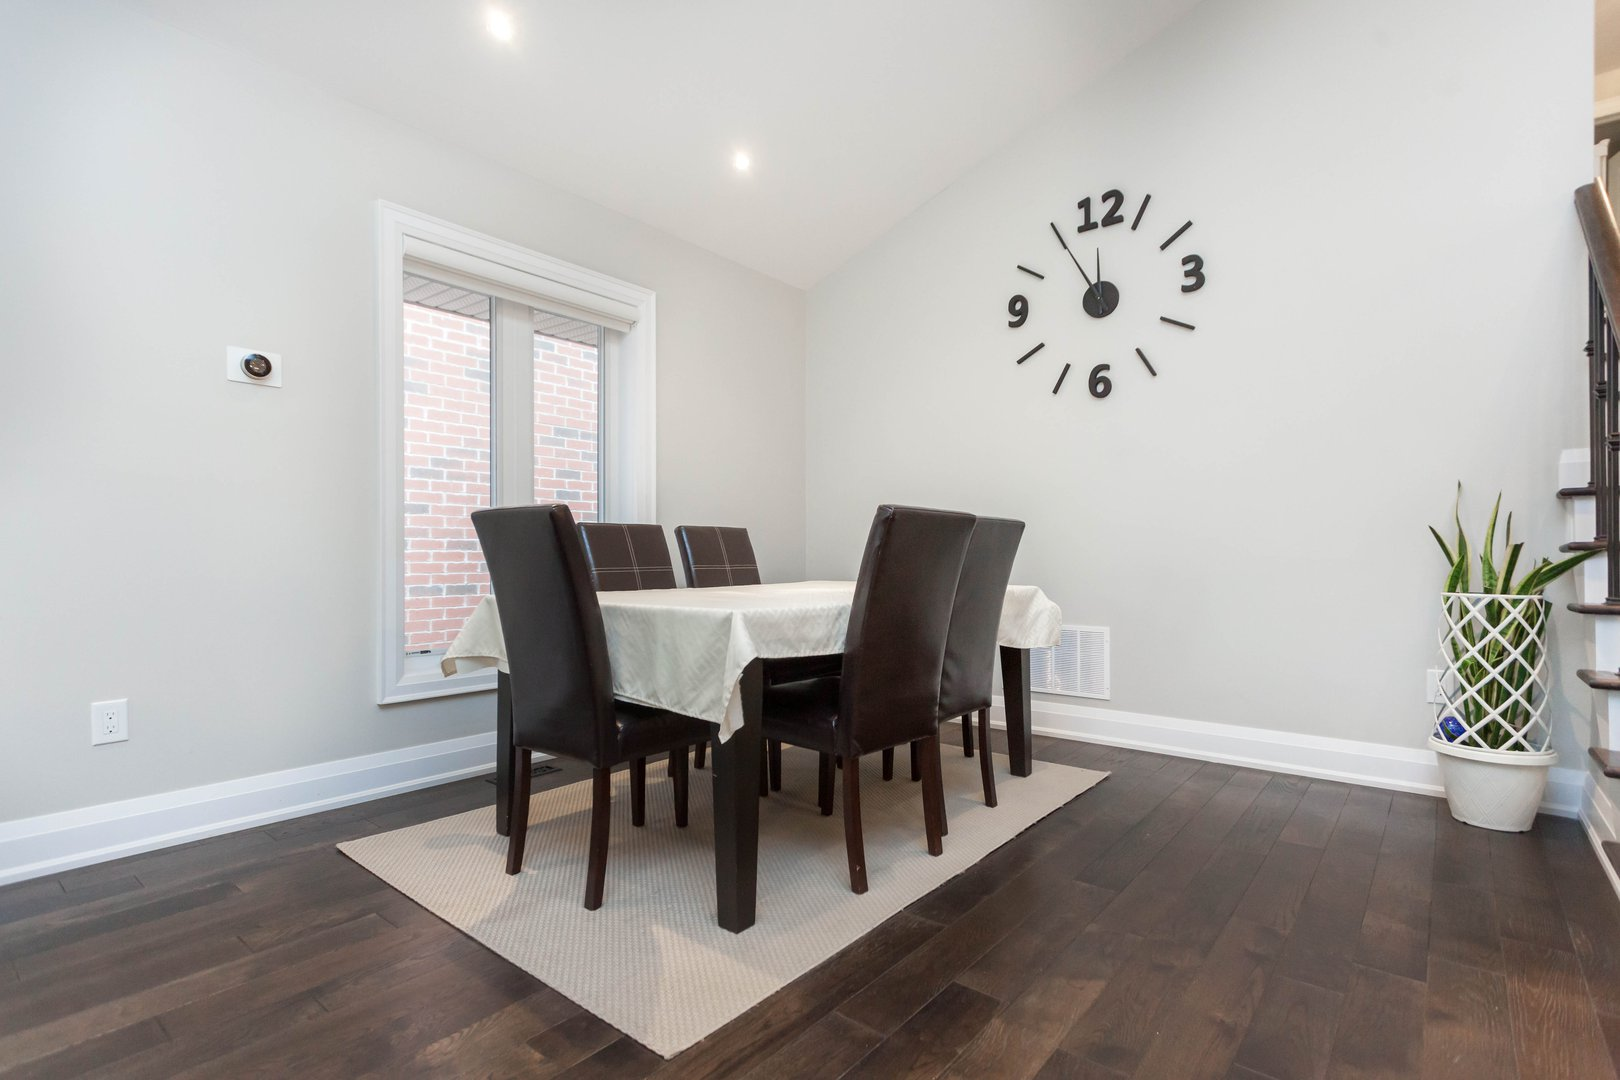 House for rent at 84 Laurel Avenue, Etobicoke, ON. This is the dining area with natural light and hardwood floor.